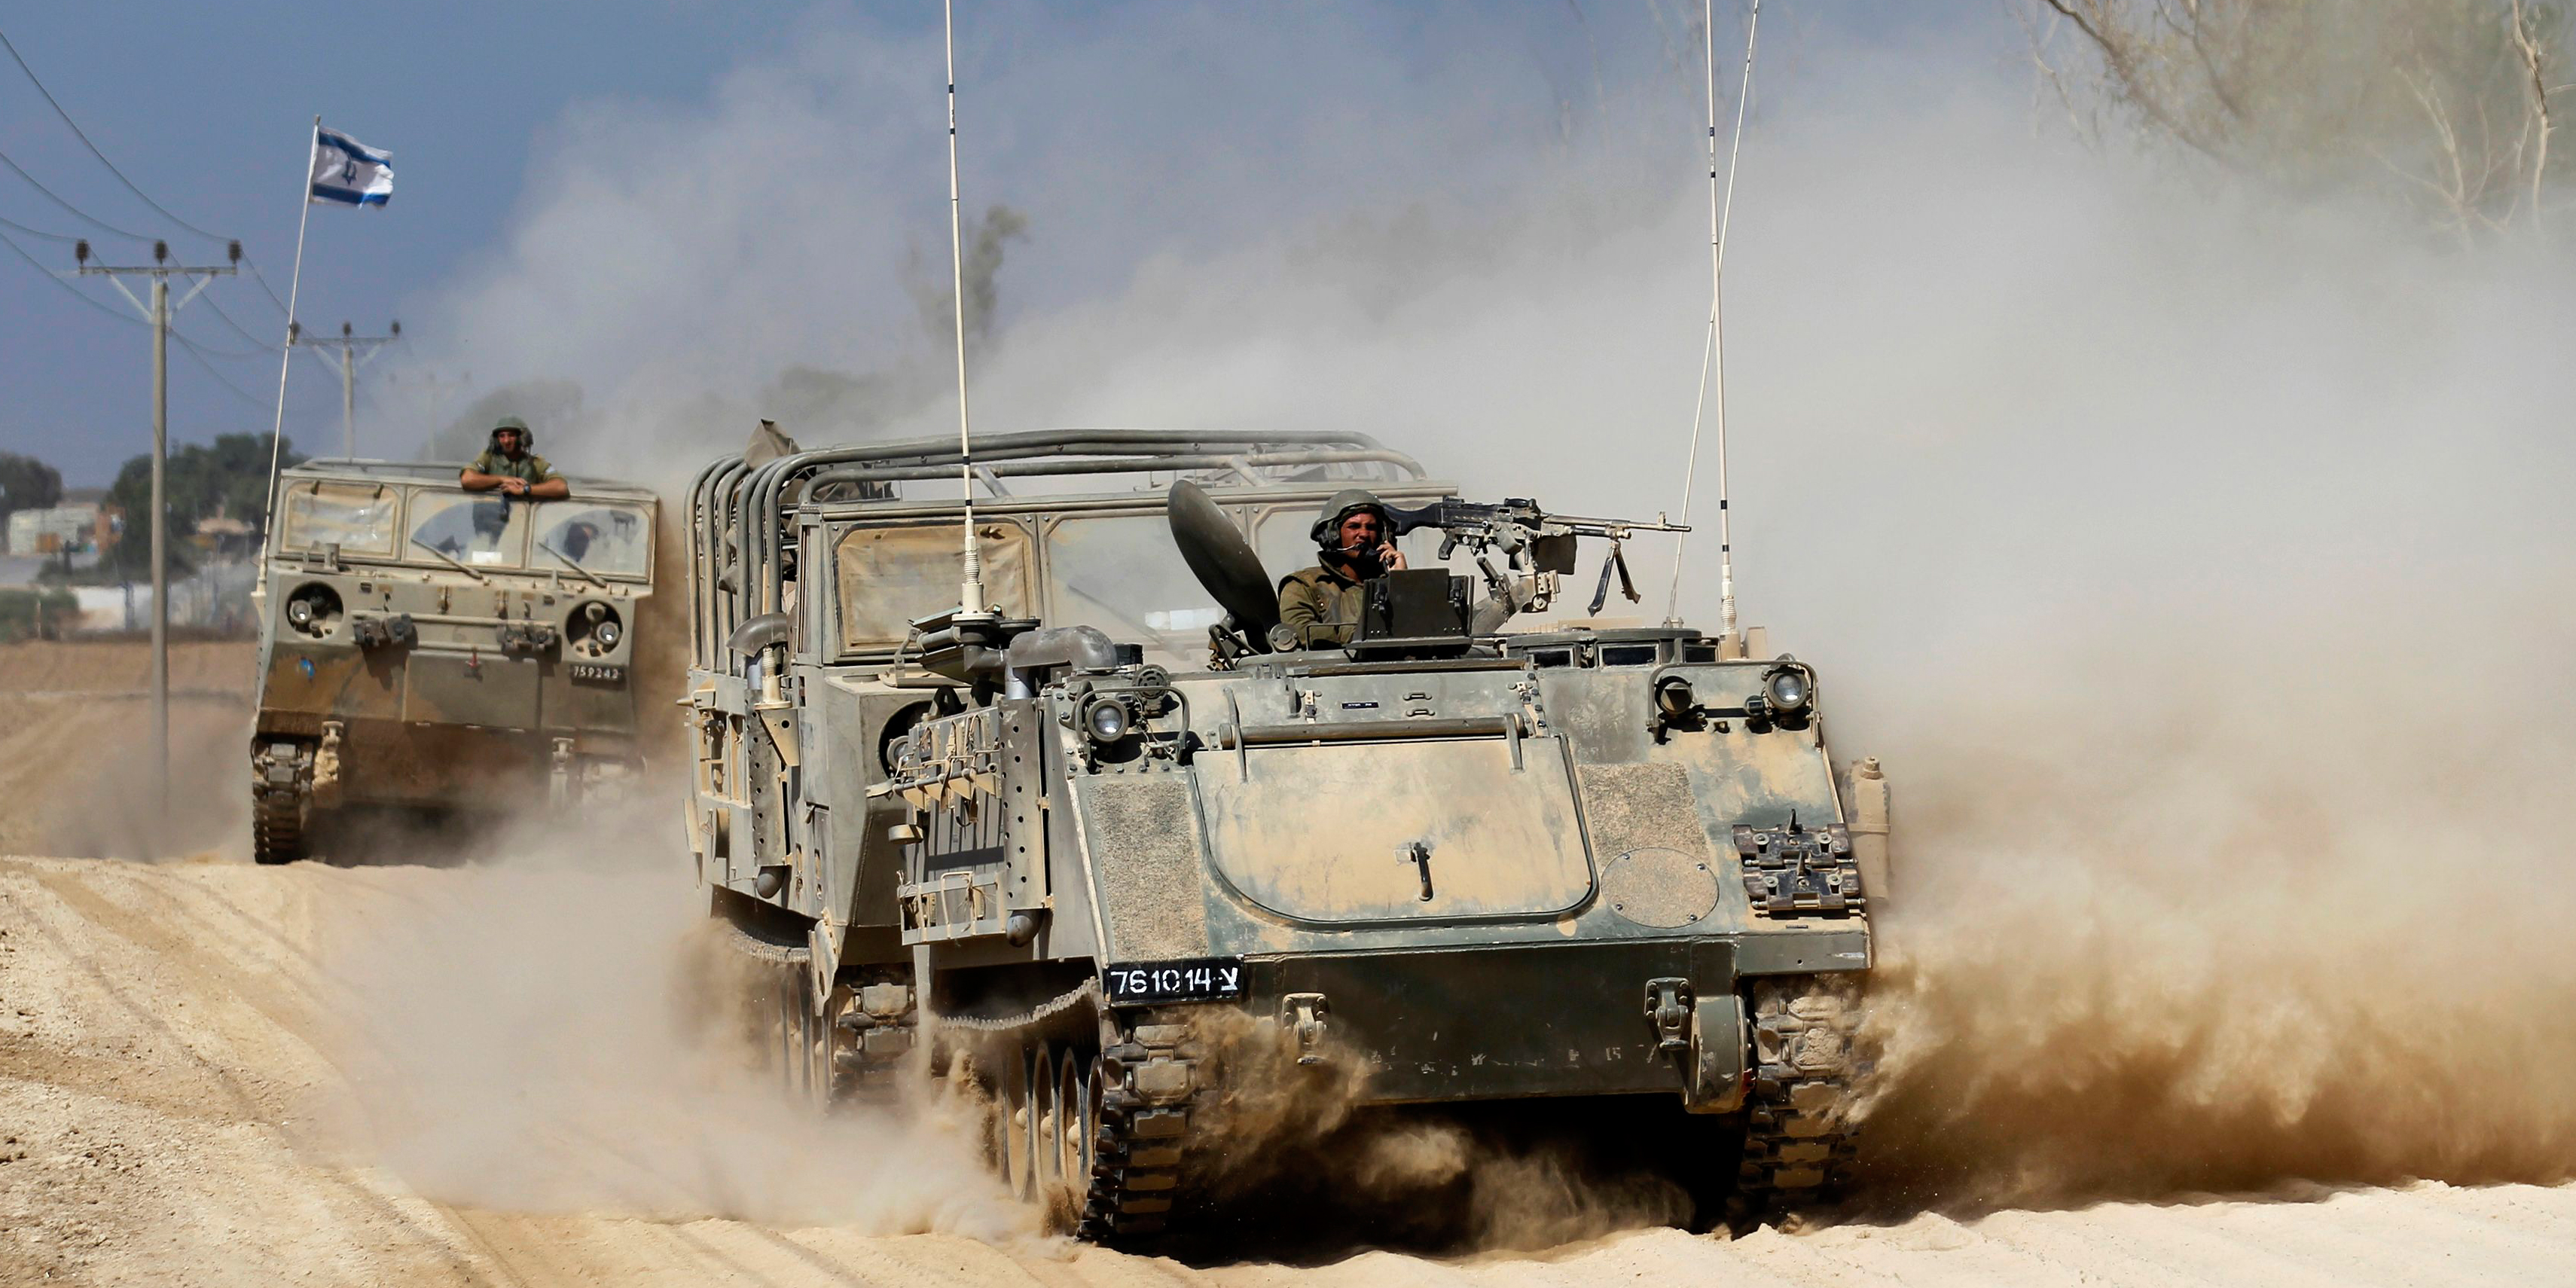 An Israeli armoured personnel carrier (APC) manoeuvres near the border with Gaza Strip August 22. A mortar bomb fired from Gaza killed a four-year-old Israeli boy, in a border collective farm on Friday, Israeli security sources said, the first Israeli child killed in the conflict. Photo: Reuters